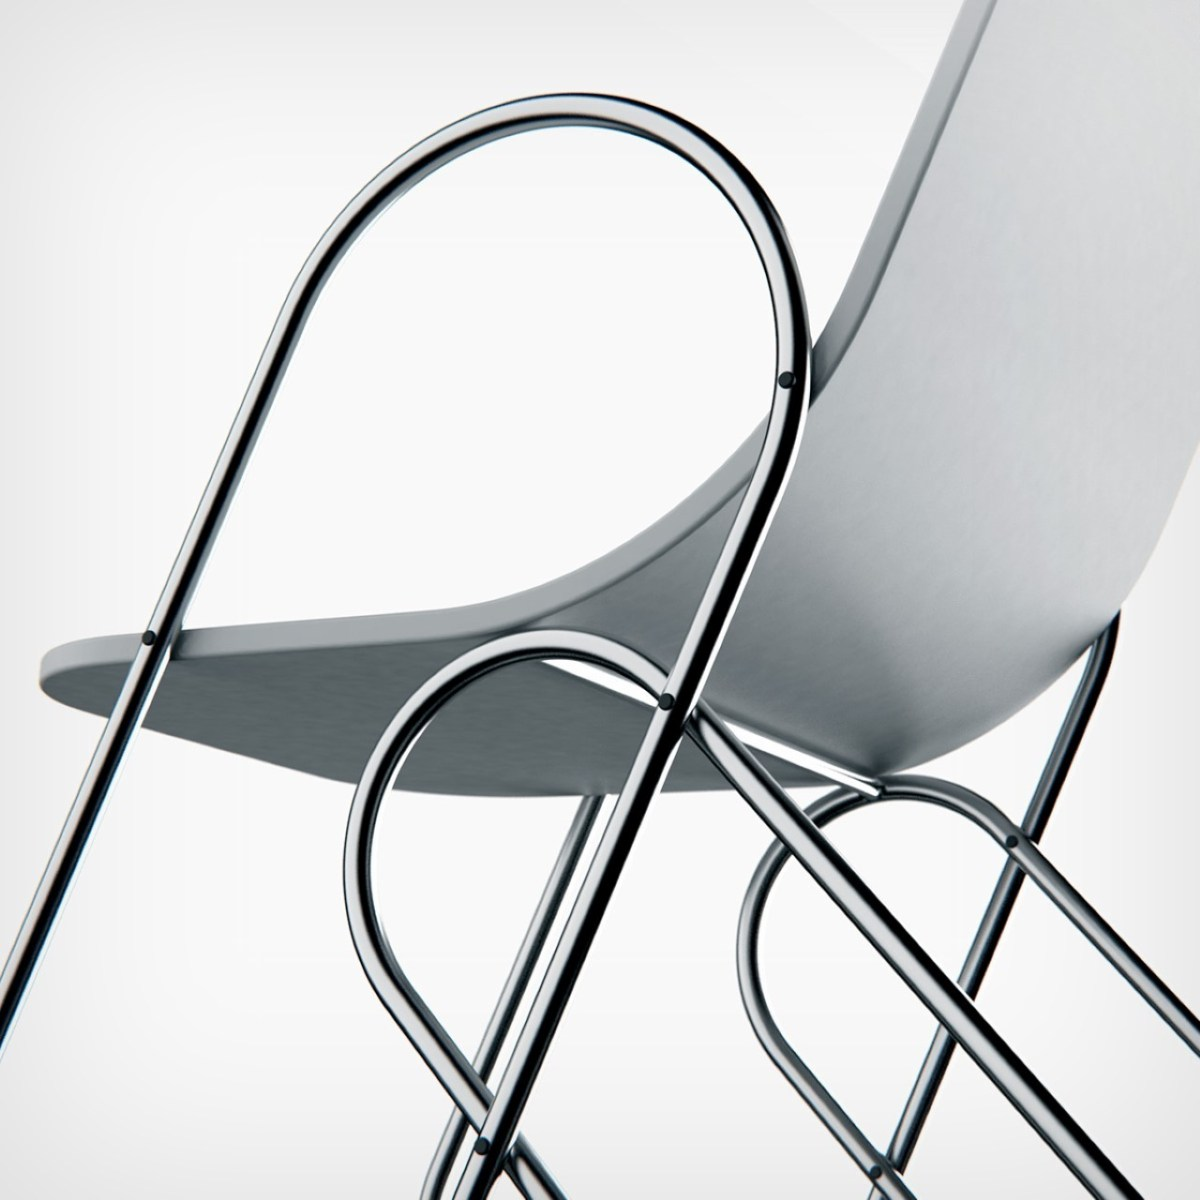 Paperclip Chair by Andrew Edge